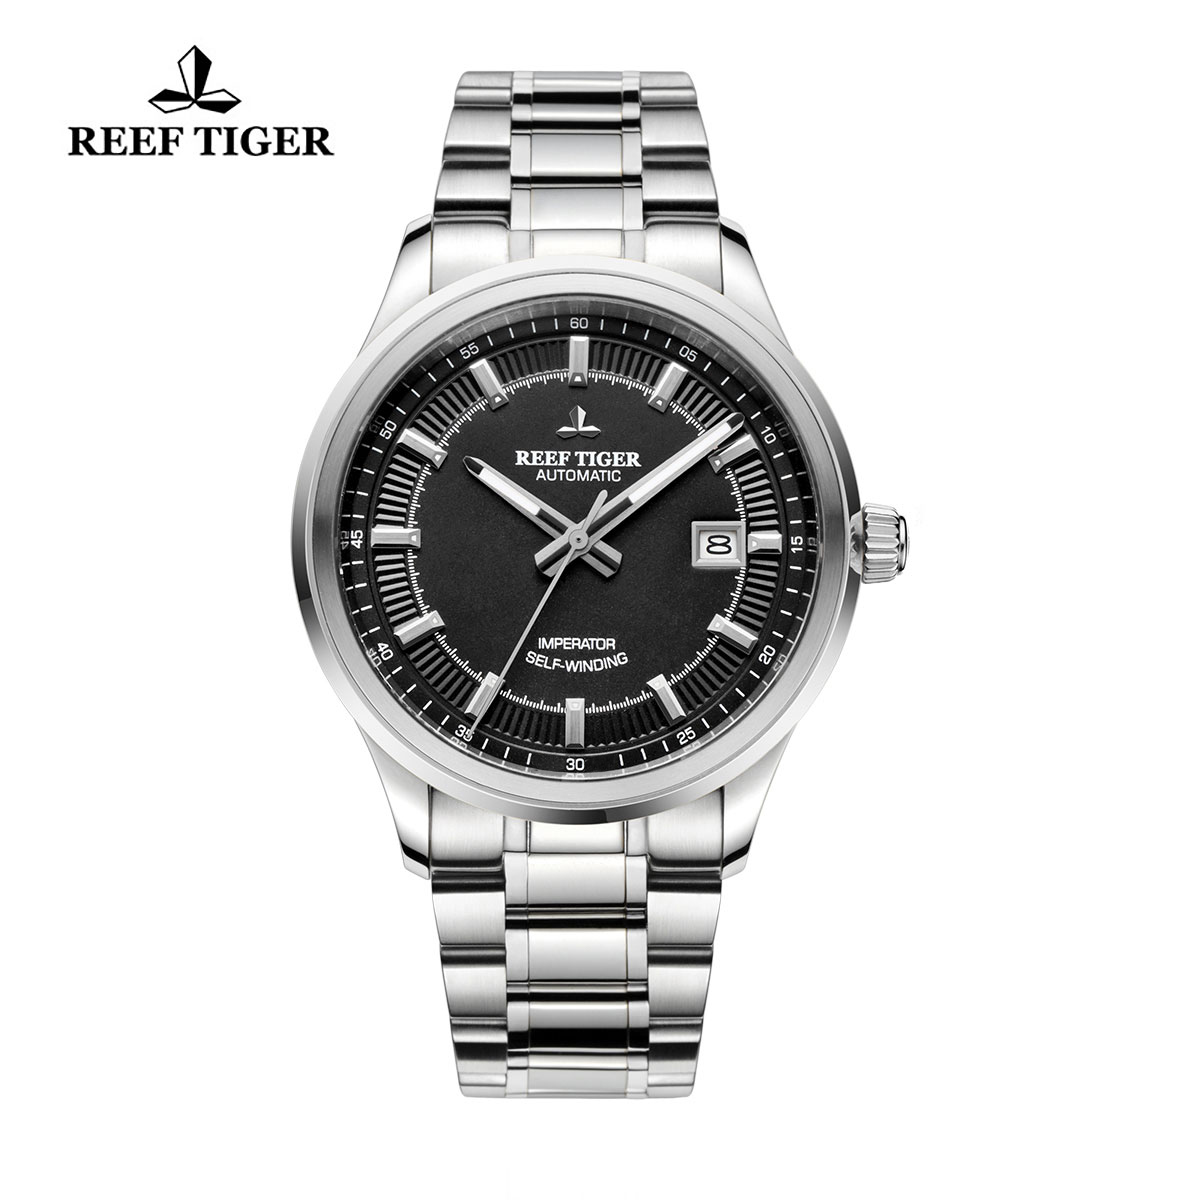 Reef Tiger Imperator Dress Watch Automatic Stainless Steel Black Dial RGA8015-YBY